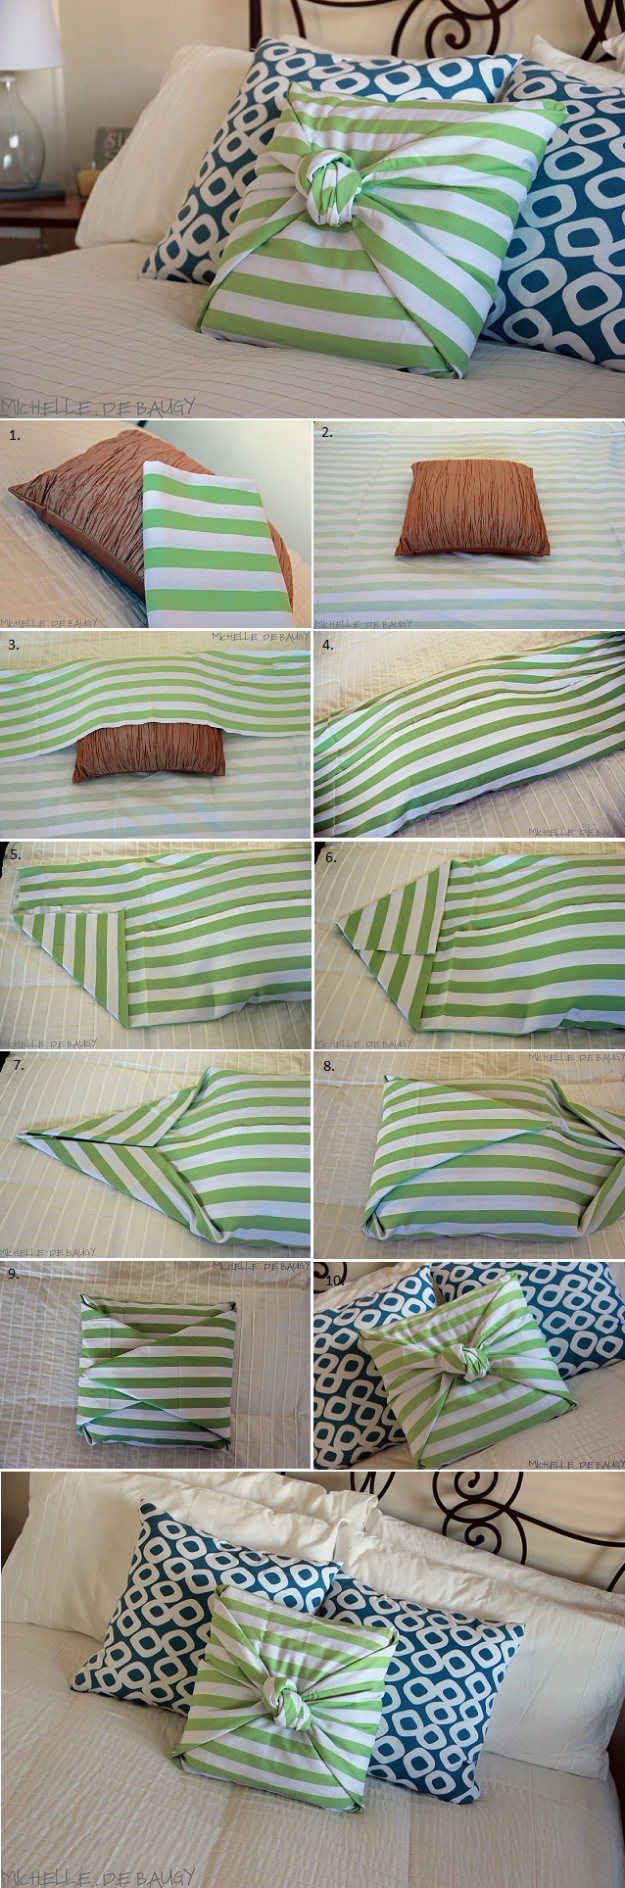 DIY Pillowcases - No Sew Pillow Case GÇô DIY - Easy Sewing Projects for Pillows - Bedroom and Home Decor Ideas - Sewing Patterns and Tutorials - No Sew Ideas - DIY Projects and Crafts for Women #sewing #diydecor #pillows